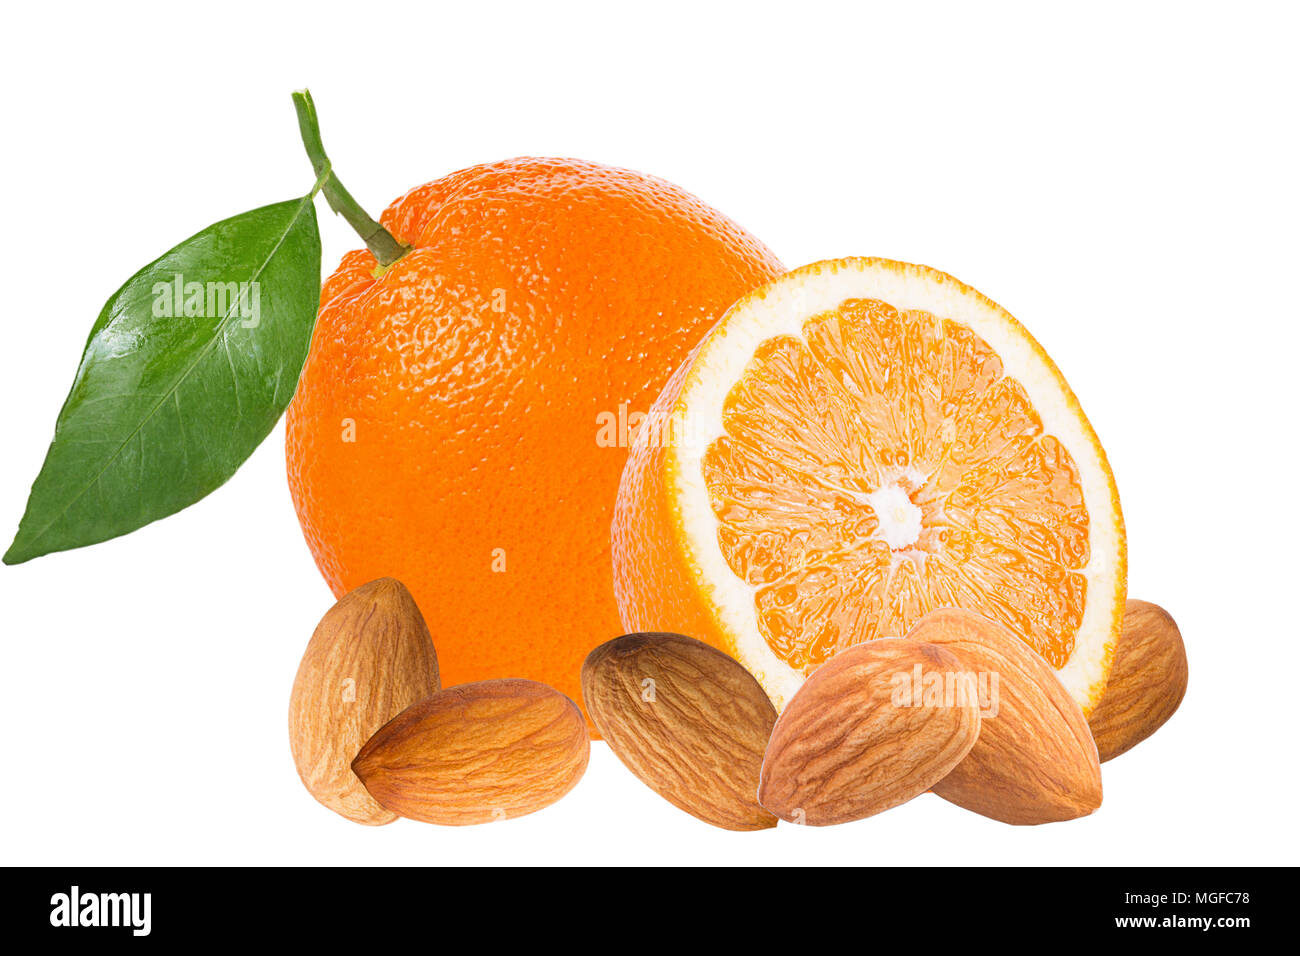 Isolated fruits. Fresh oranges and almonds isolated on white background with clipping path as packaging design element. - Stock Image